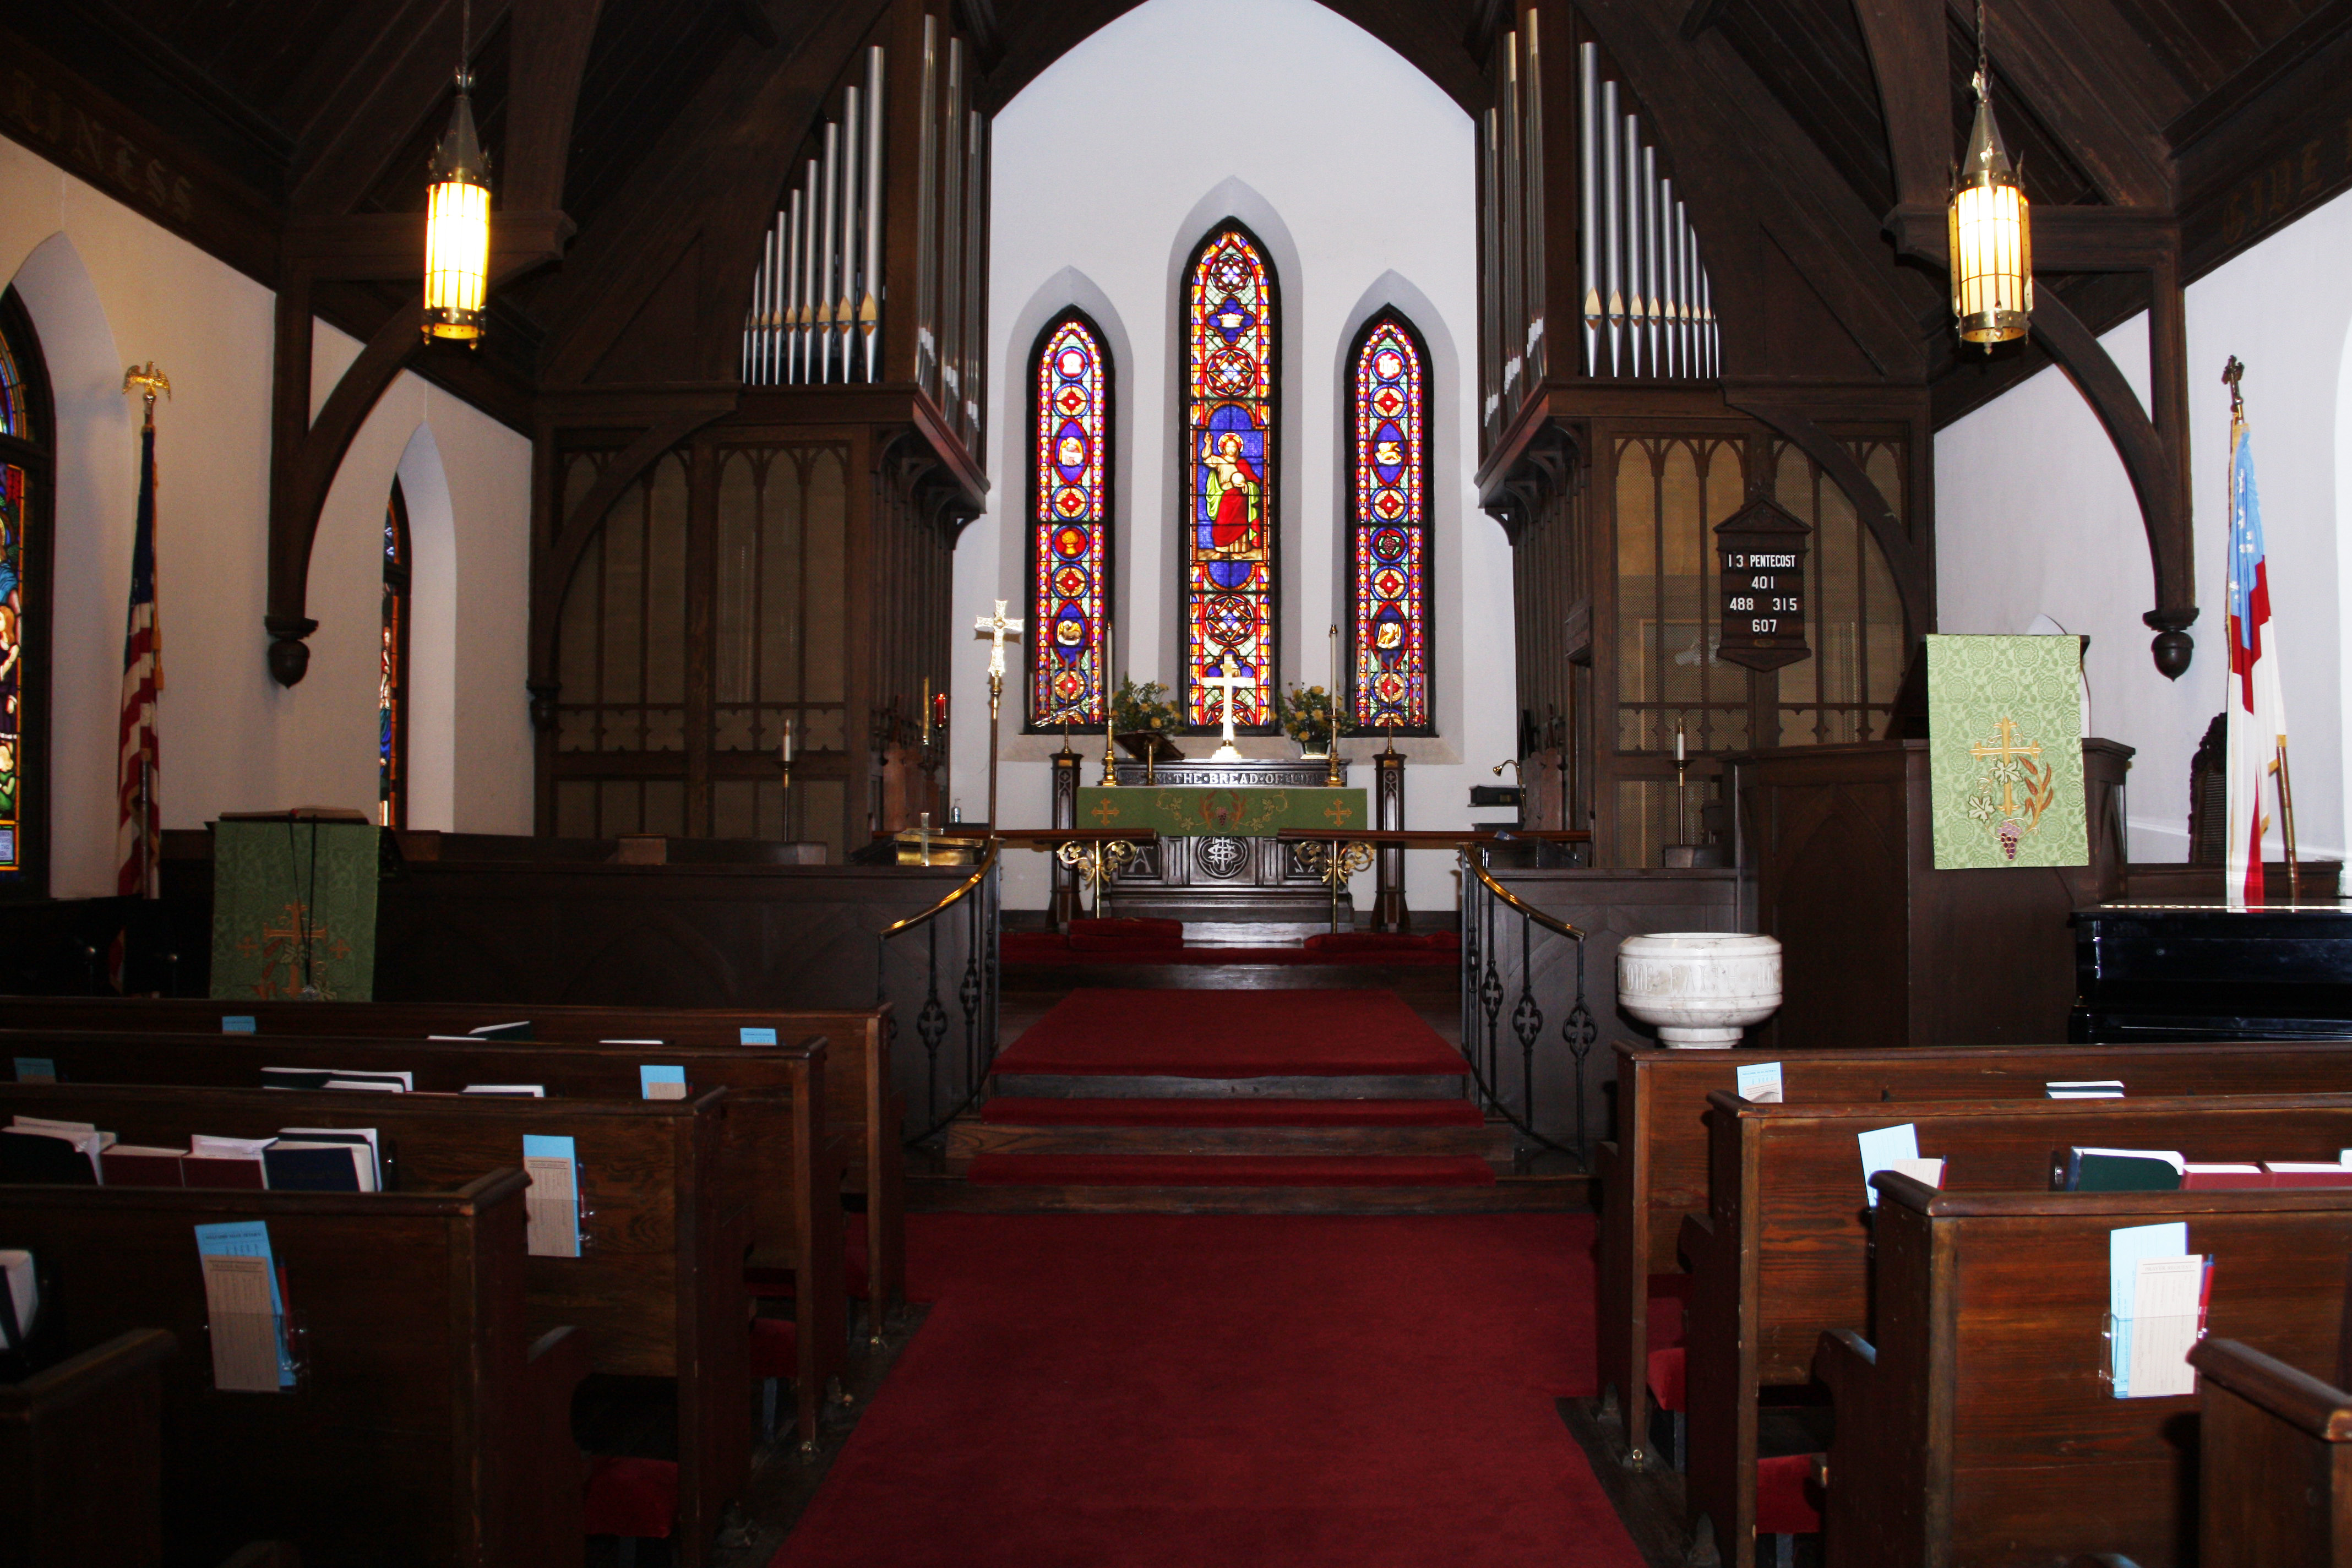 Saint Peter's Episcopal Churchl  |  Violin church performance (accompanied by organ)